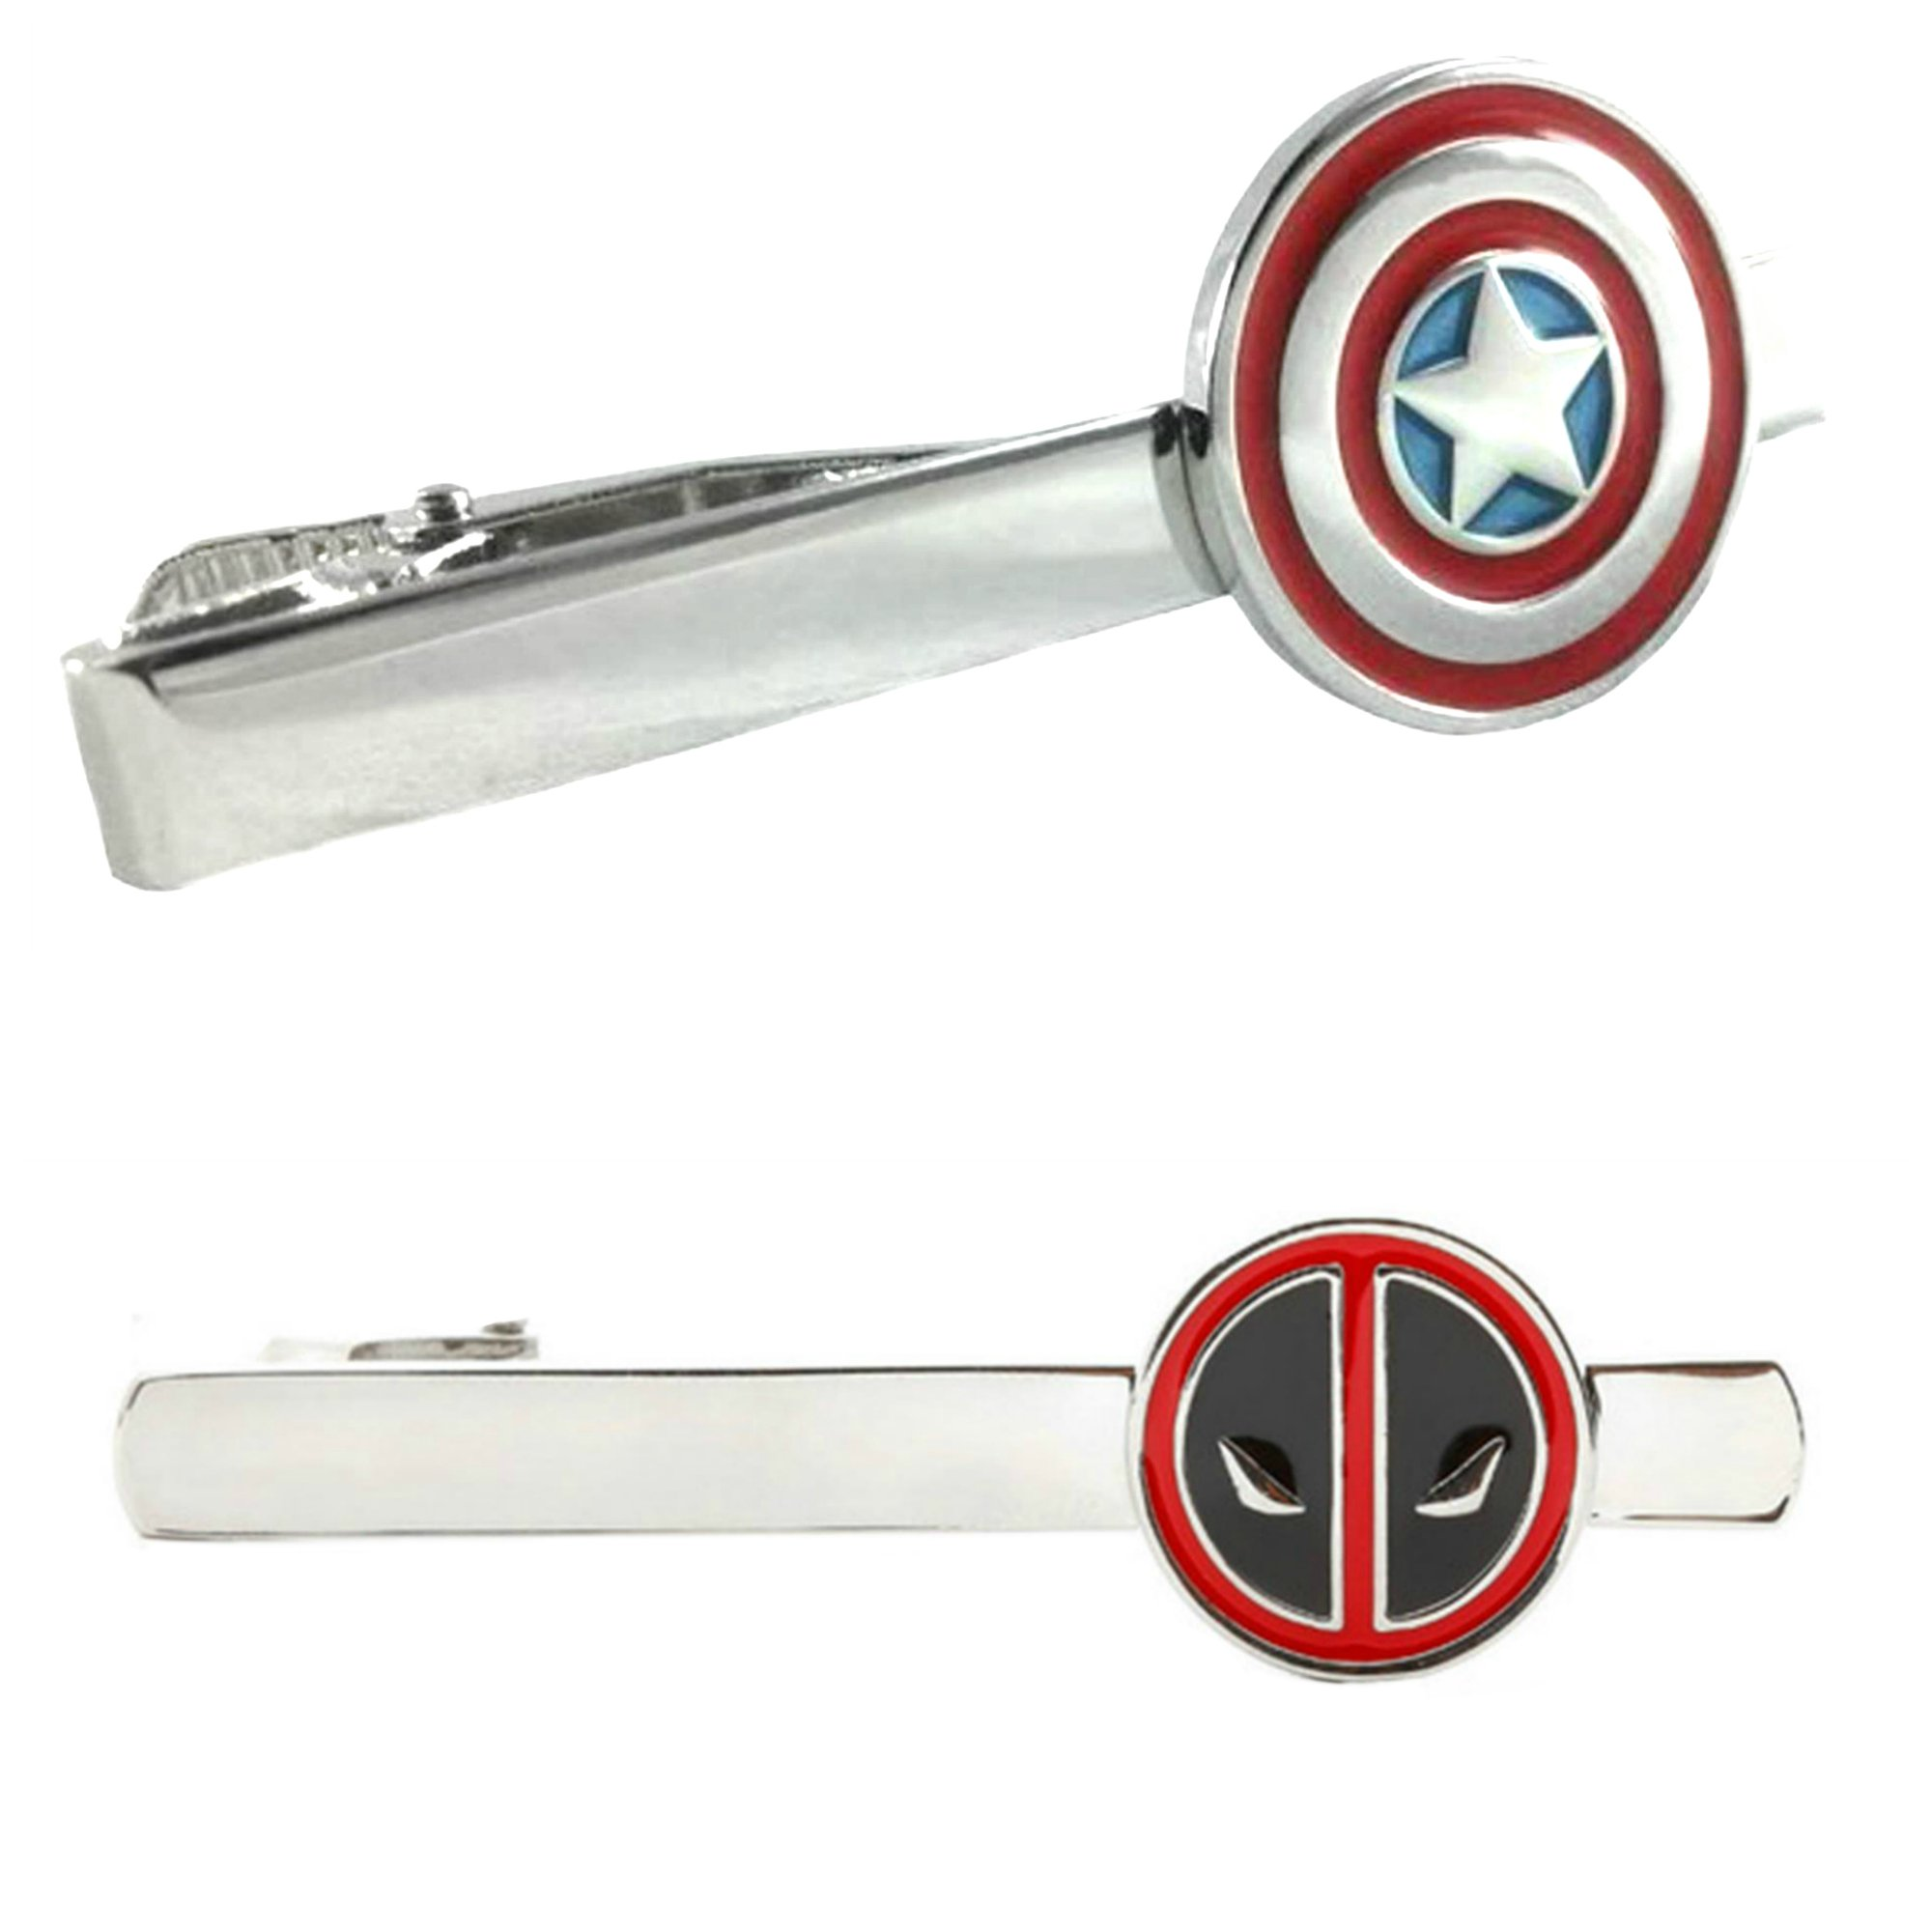 Outlander Marvel Comics - Captain America & Deadpool - Tiebar Tie Clasp Set of 2 Wedding Superhero Logo w/Gift Box